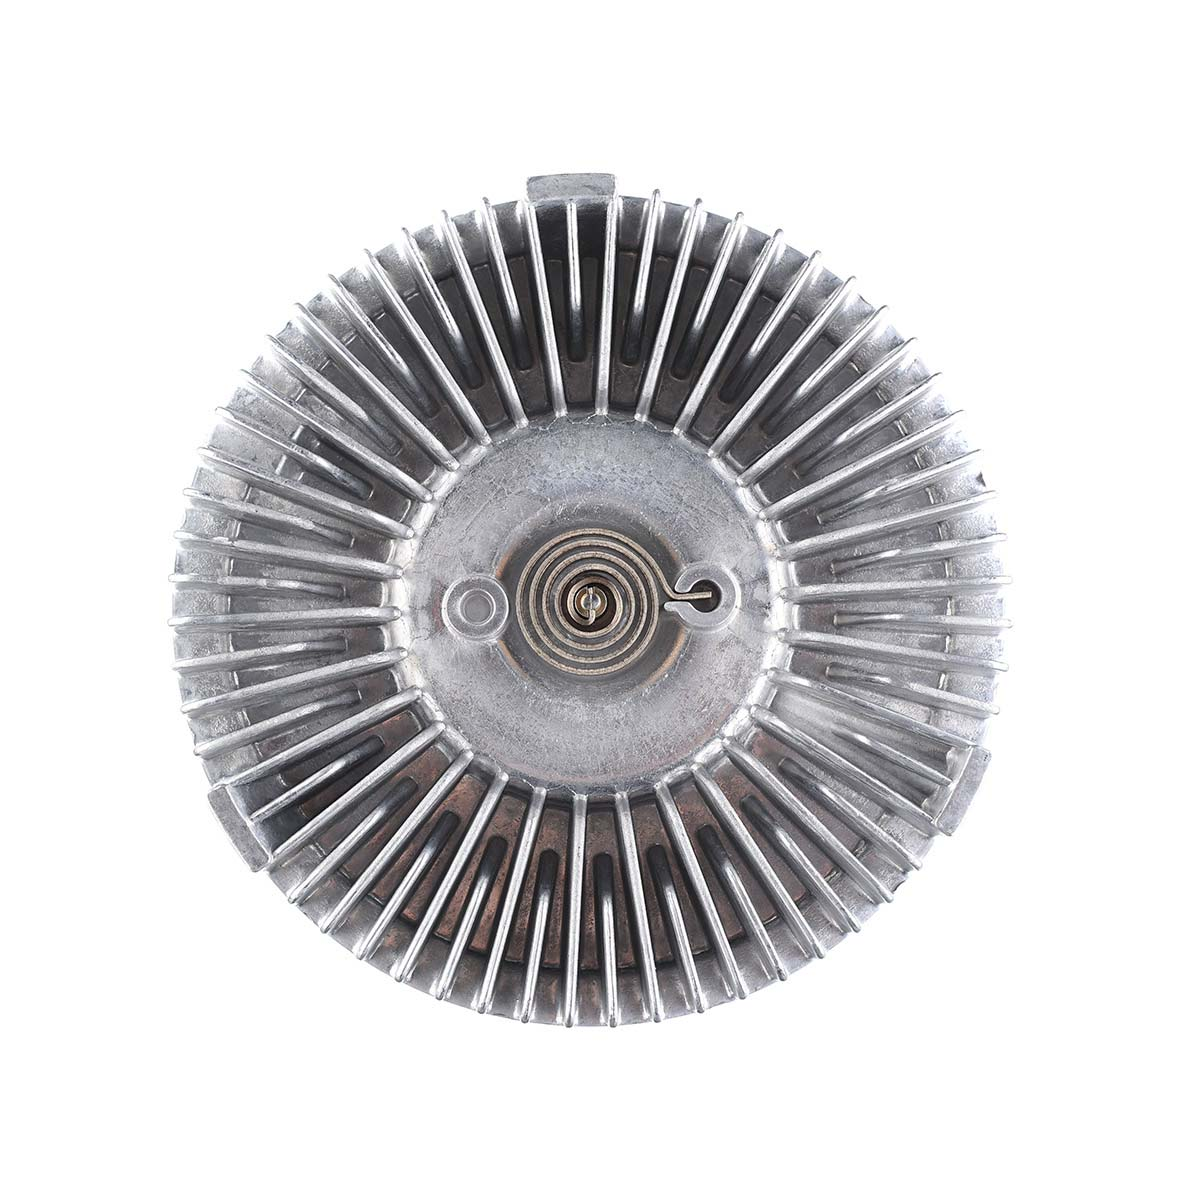 Ford Ranger Bronco II Engine Cooling Fan Clutch New